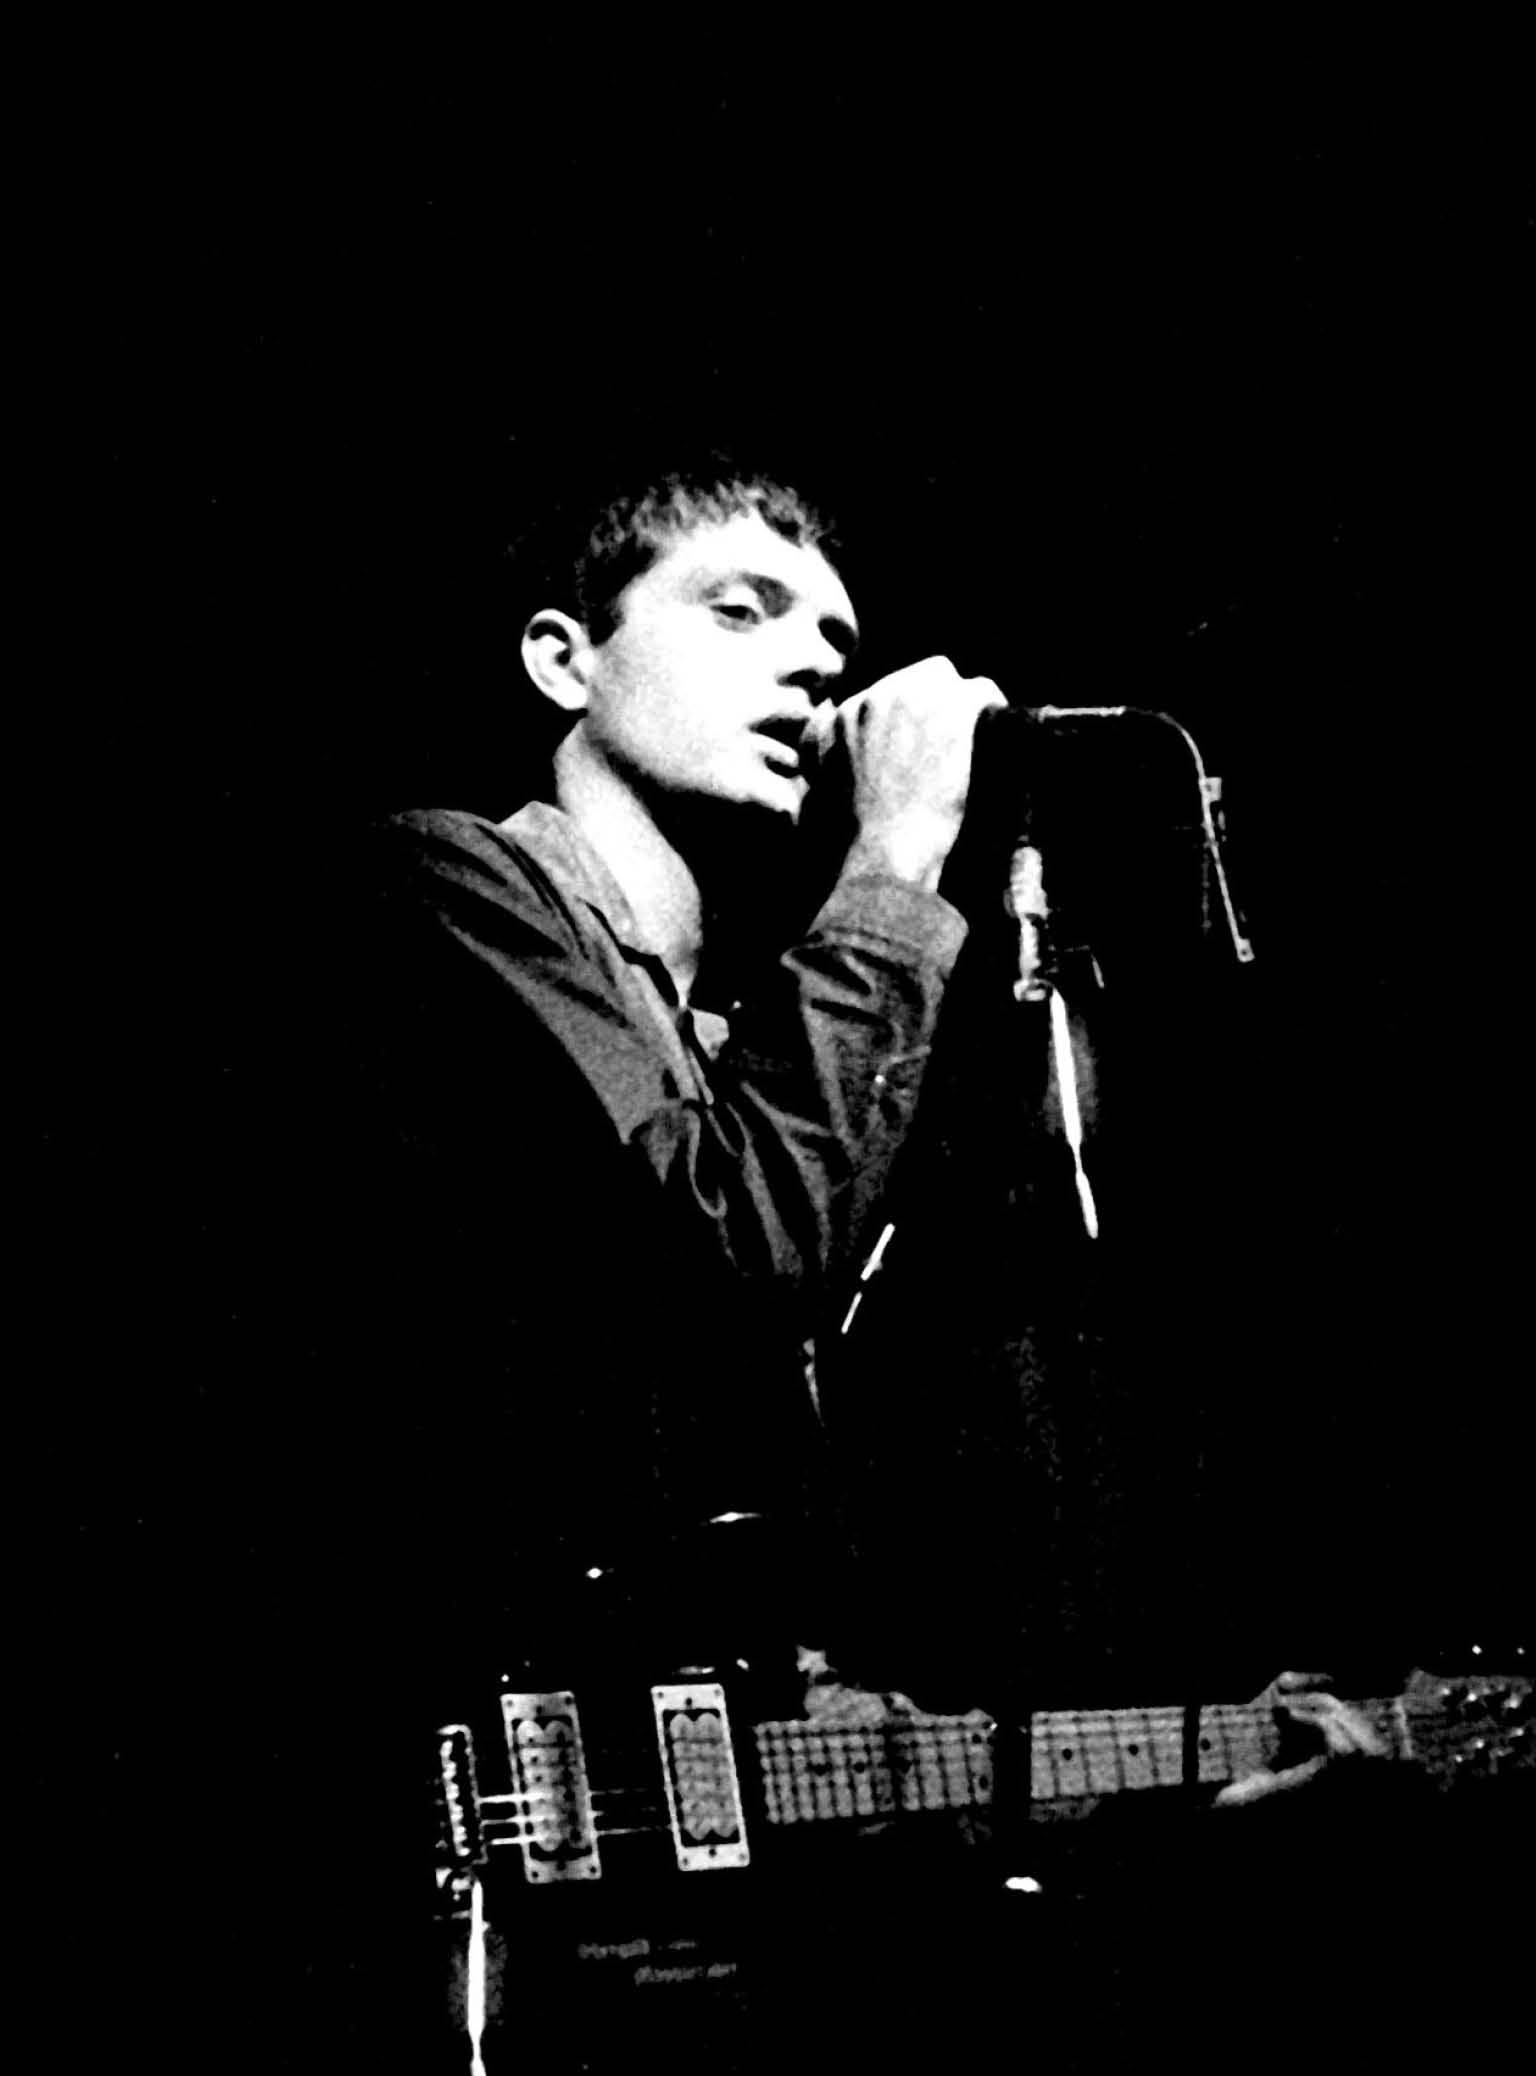 On May 18th May 2010 will be the 30th Anniversary of Ian Curtis's death. Ian Curtis and Joy Division performing live at The Electric Ballroom in London on 26th October 1979. © . Credit all Uses *Unbylined uses will incur an additional discretionary fee!*, Image: 70571808, License: Rights-managed, Restrictions: , Model Release: no, Credit line: Profimedia, Retna UK